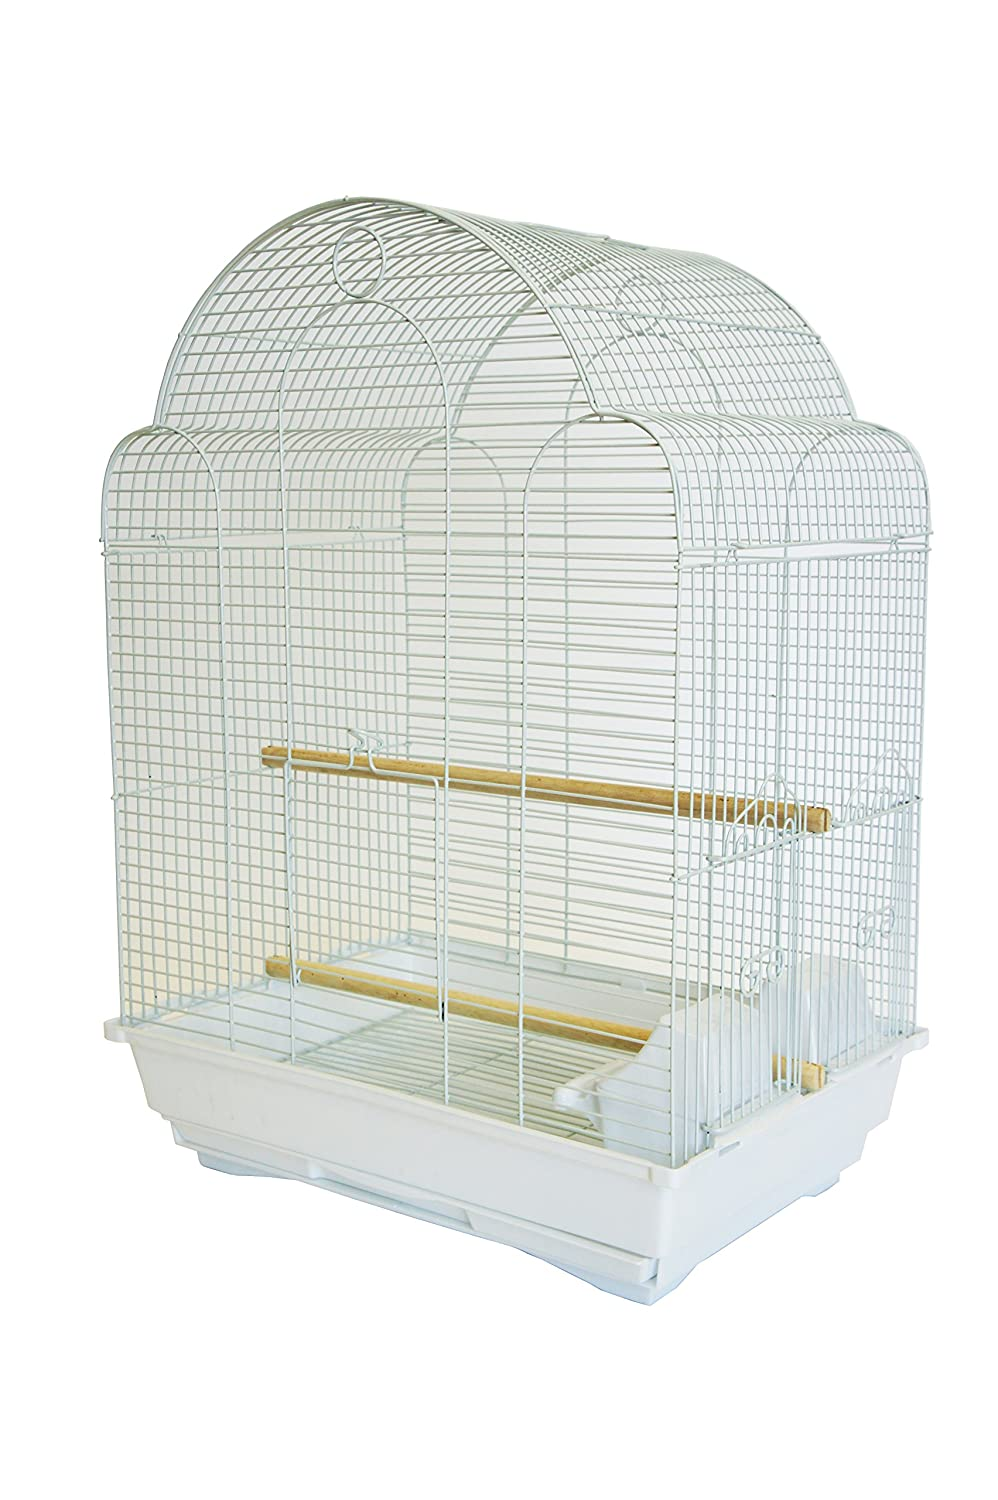 YML A1704 Bar Spacing Shell Top Bird Cage, White A1704WHT